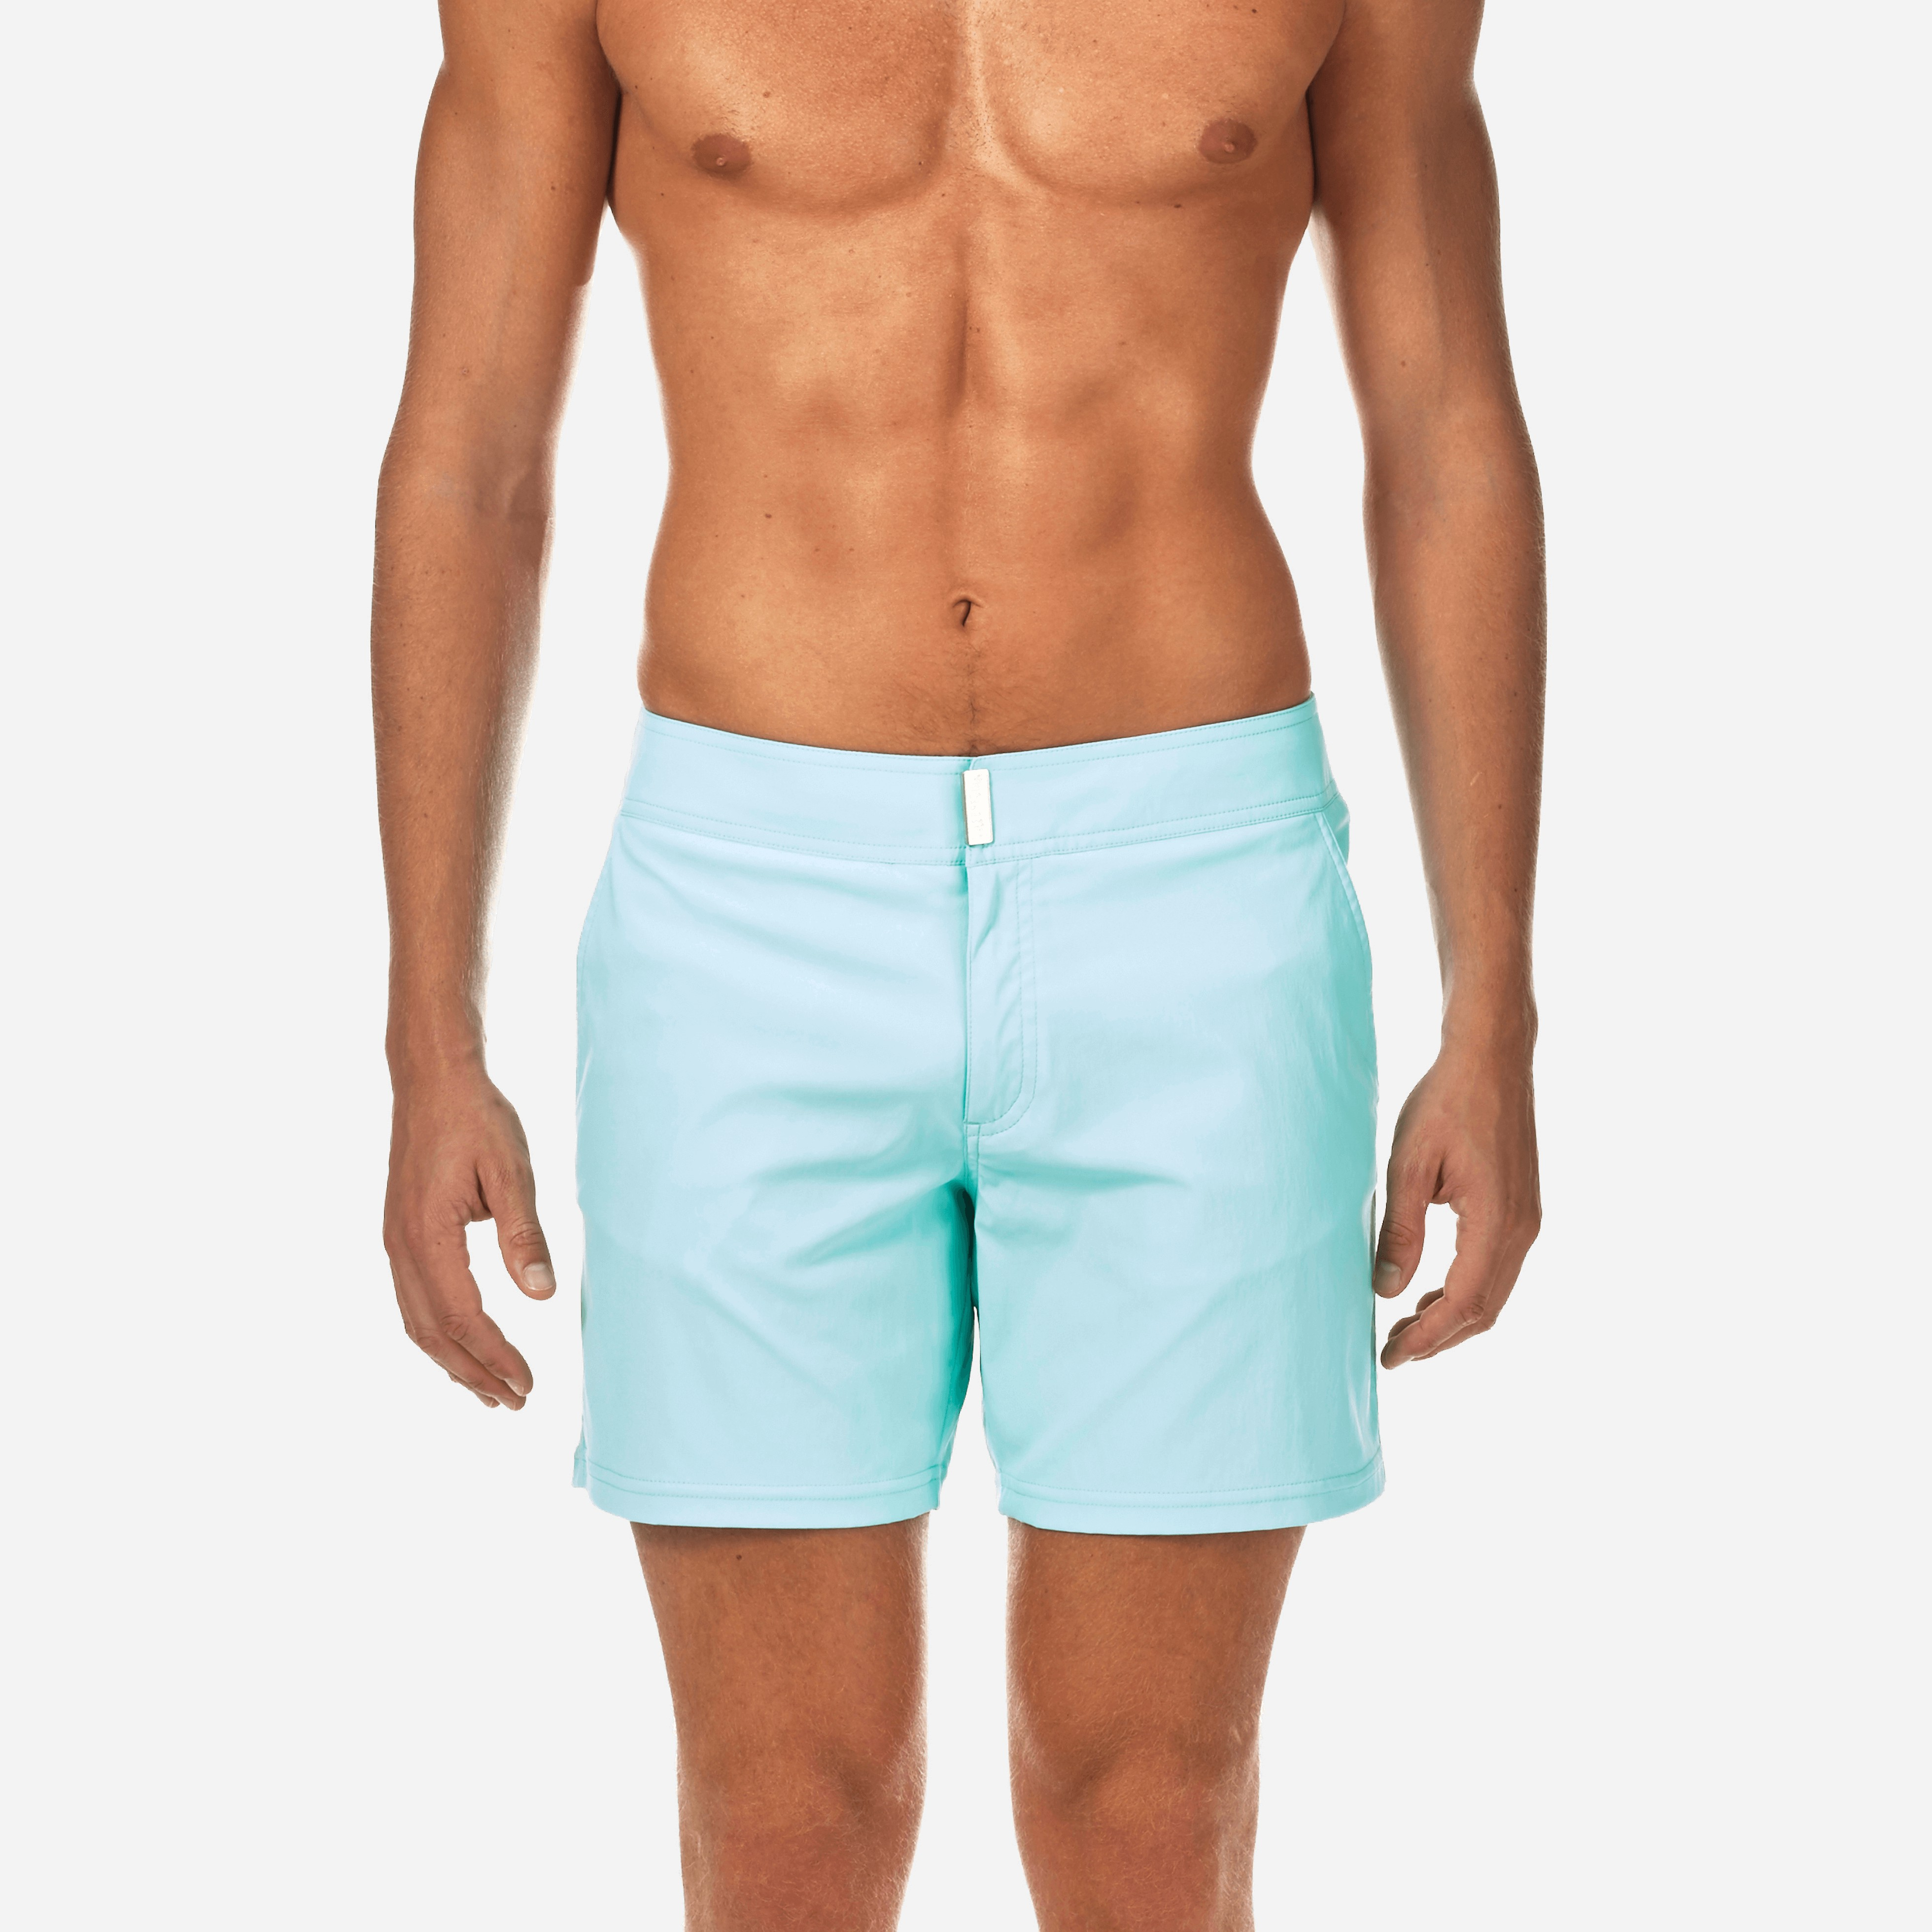 59a66dff9398b Vilebrequin Men Short And Fitted Stretch Swimwear Solid, Style: Merise -  Lagoon Xxxl Blue